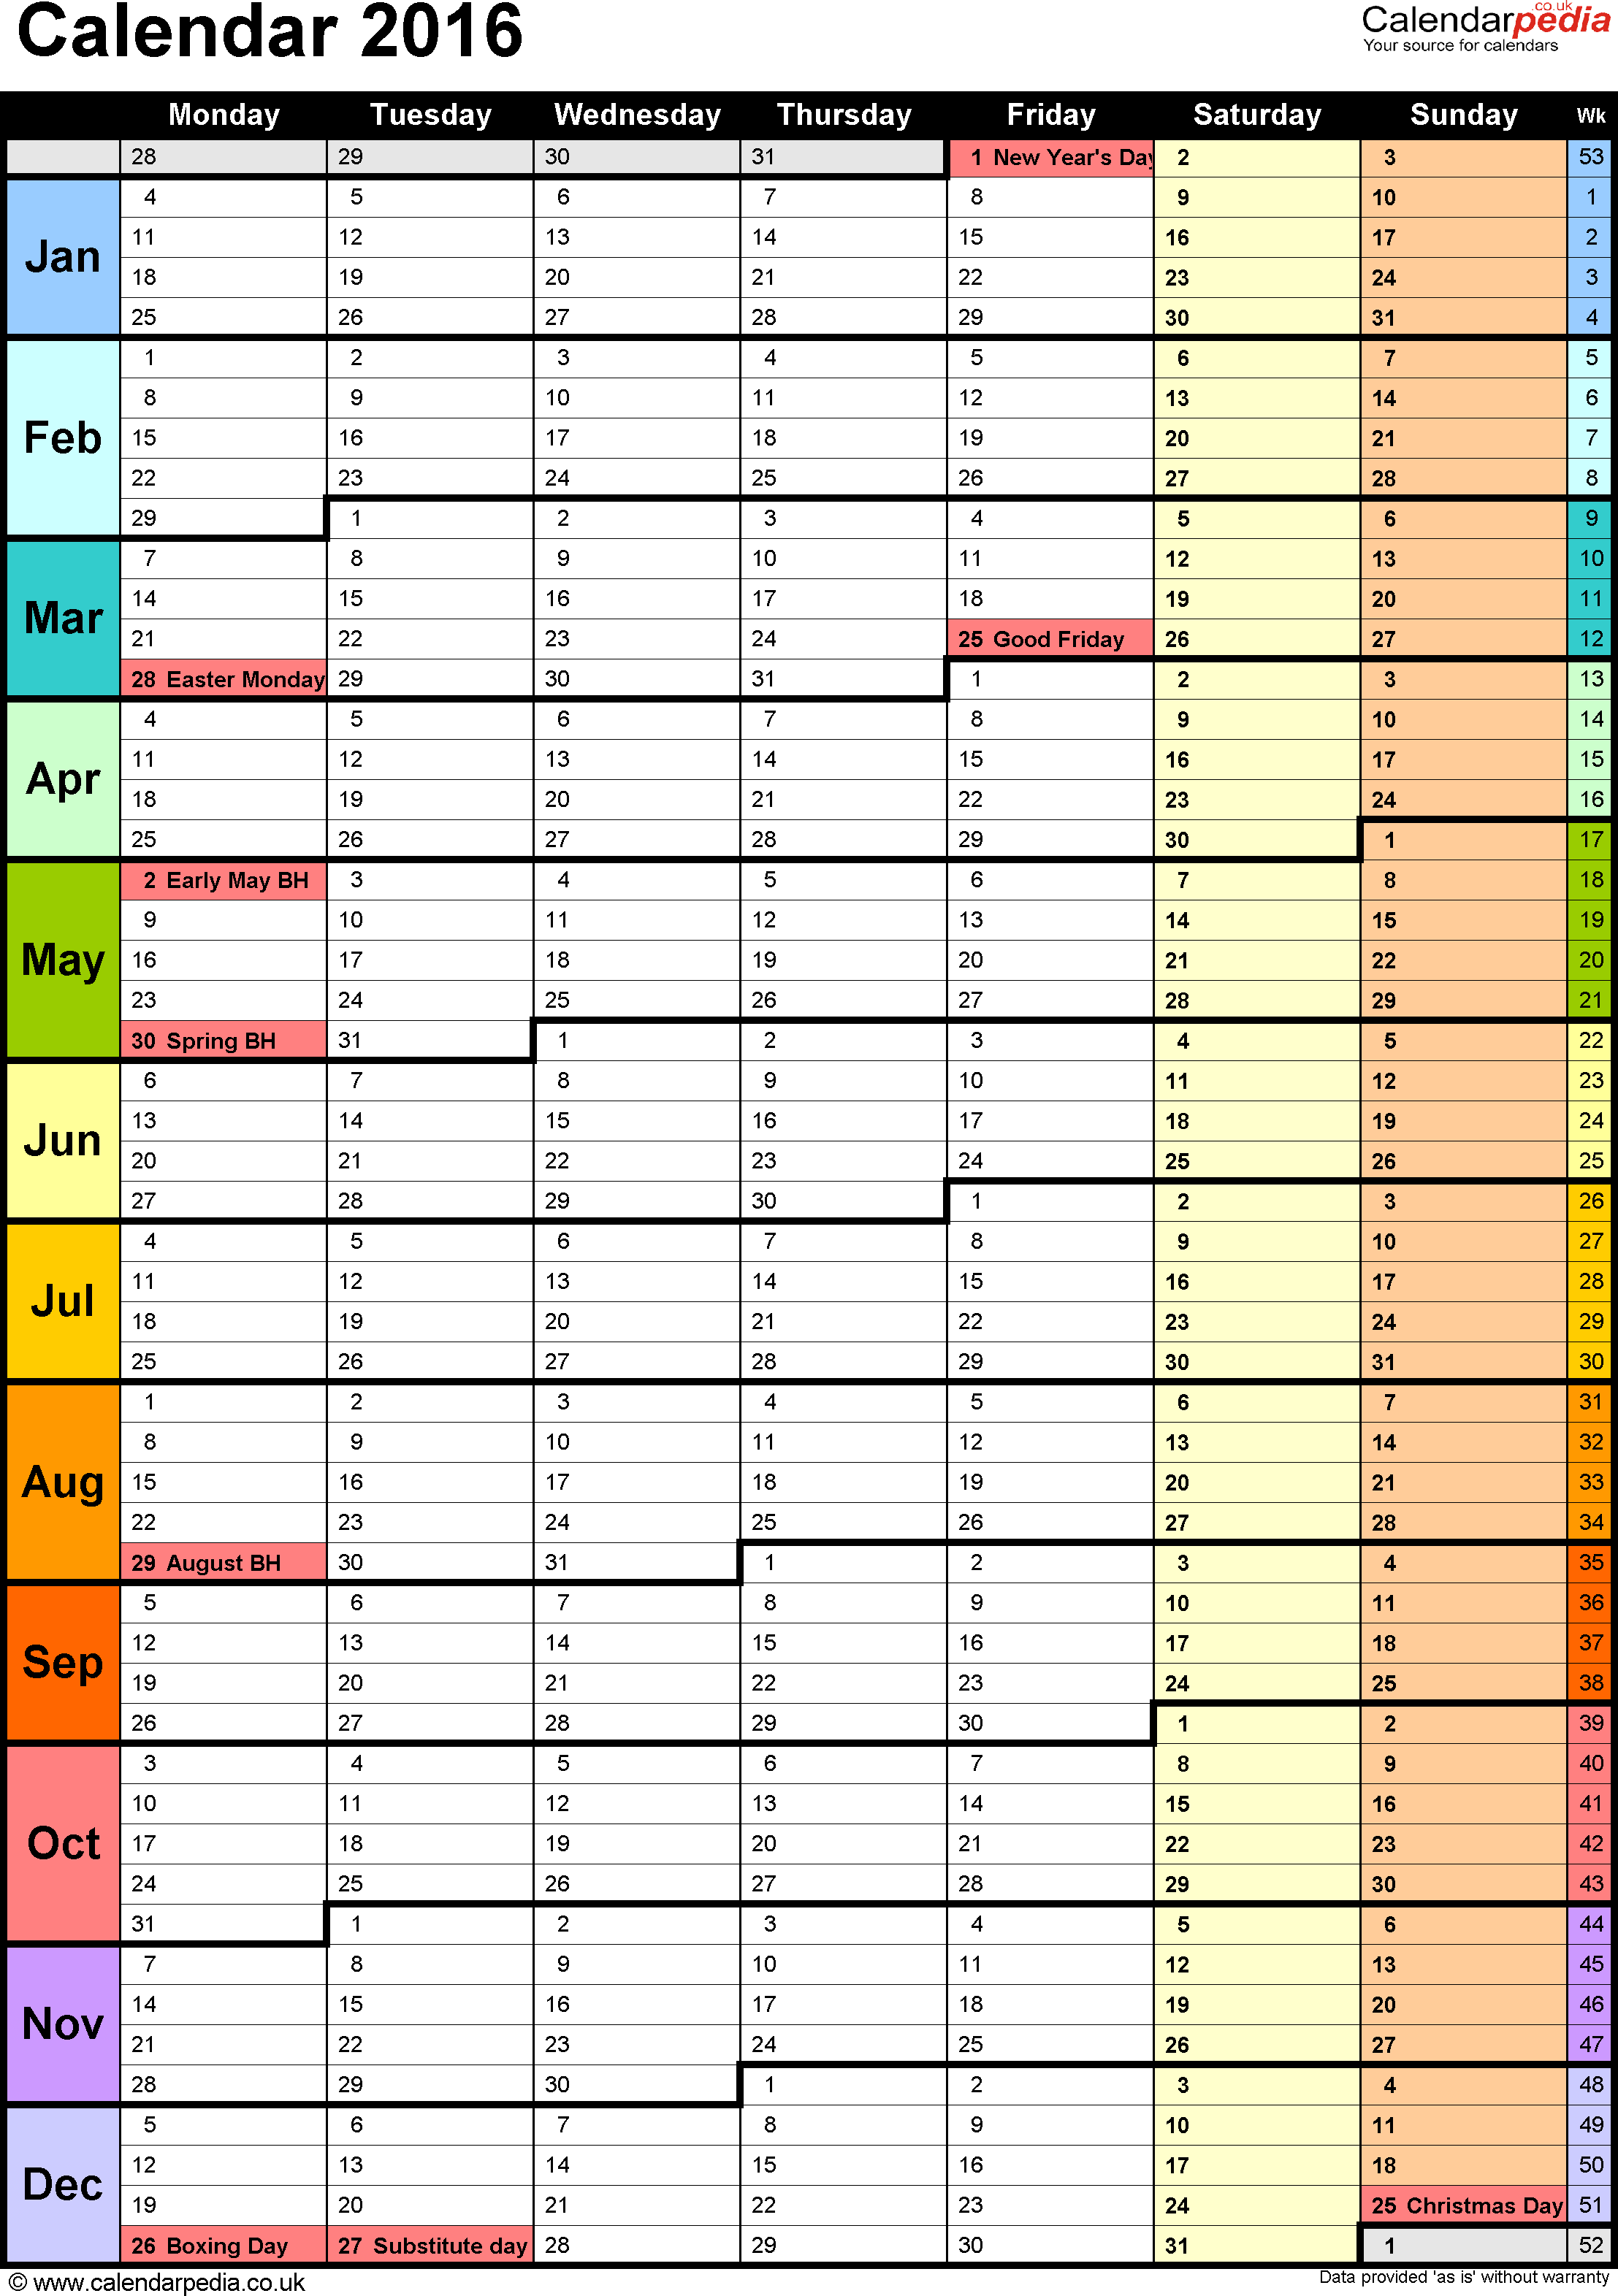 Calendar 2016 (UK) - 16 free printable Word templates